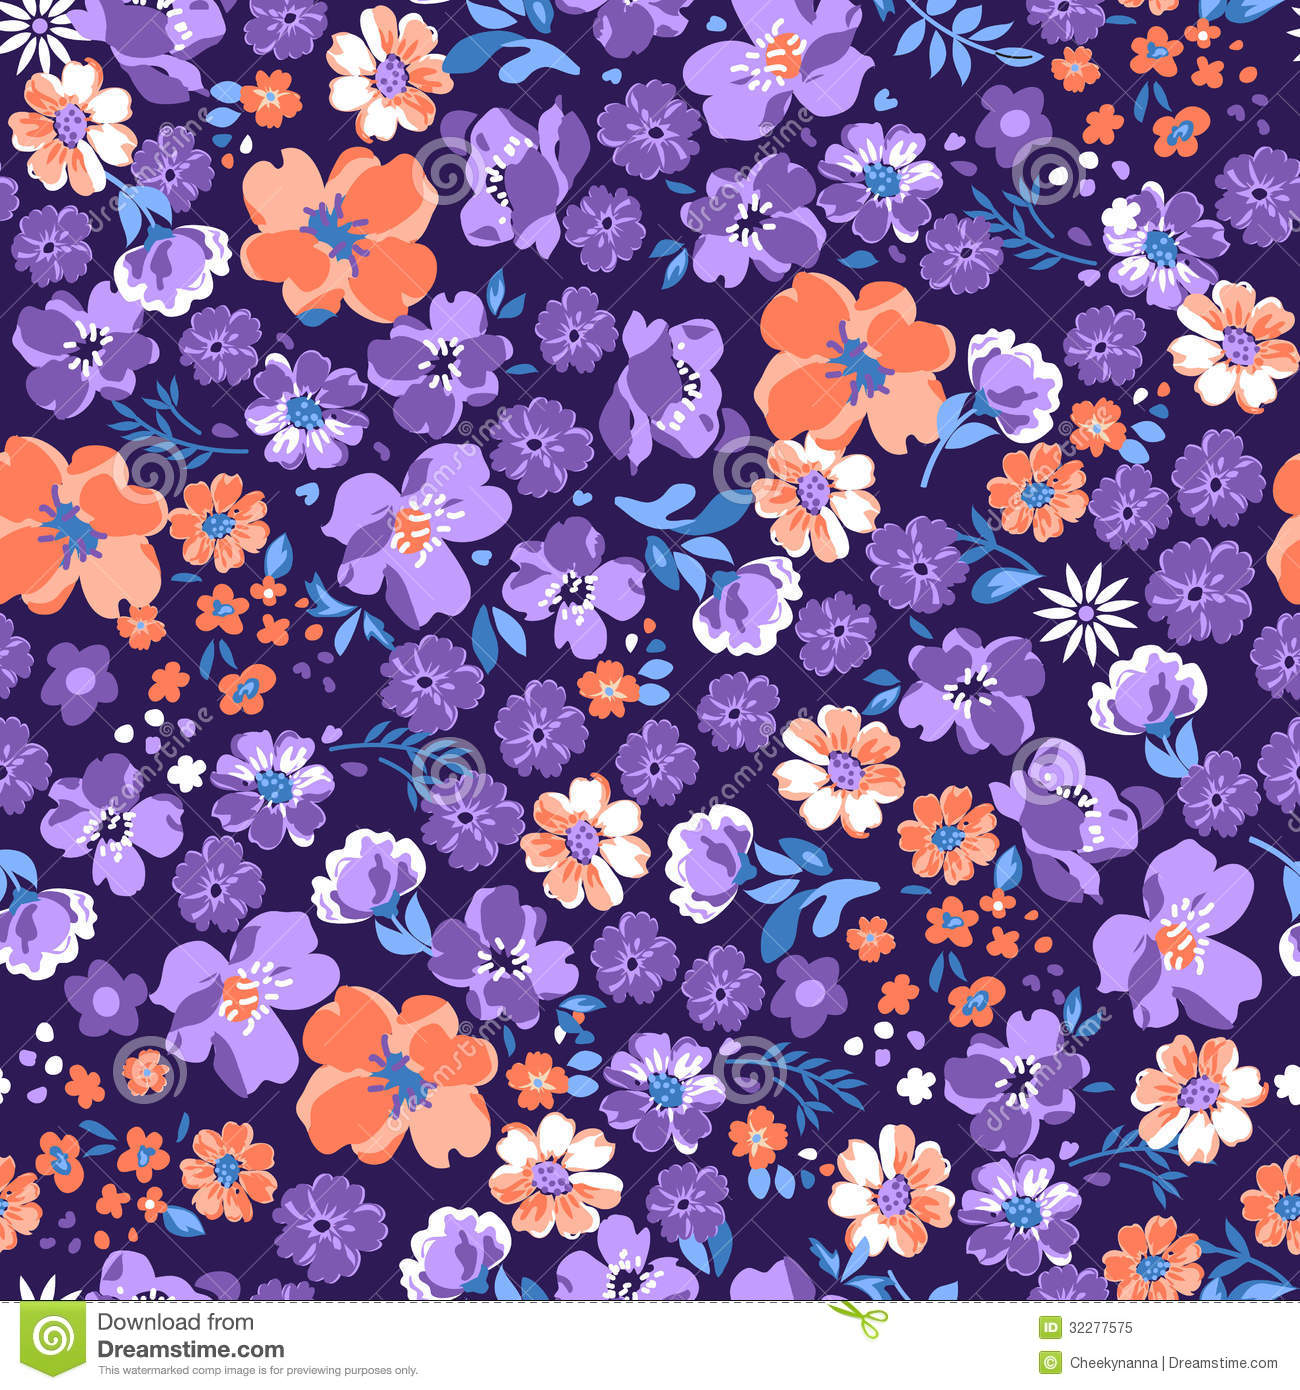 Purple Flower Background Tumblr Amazing Wallpapers